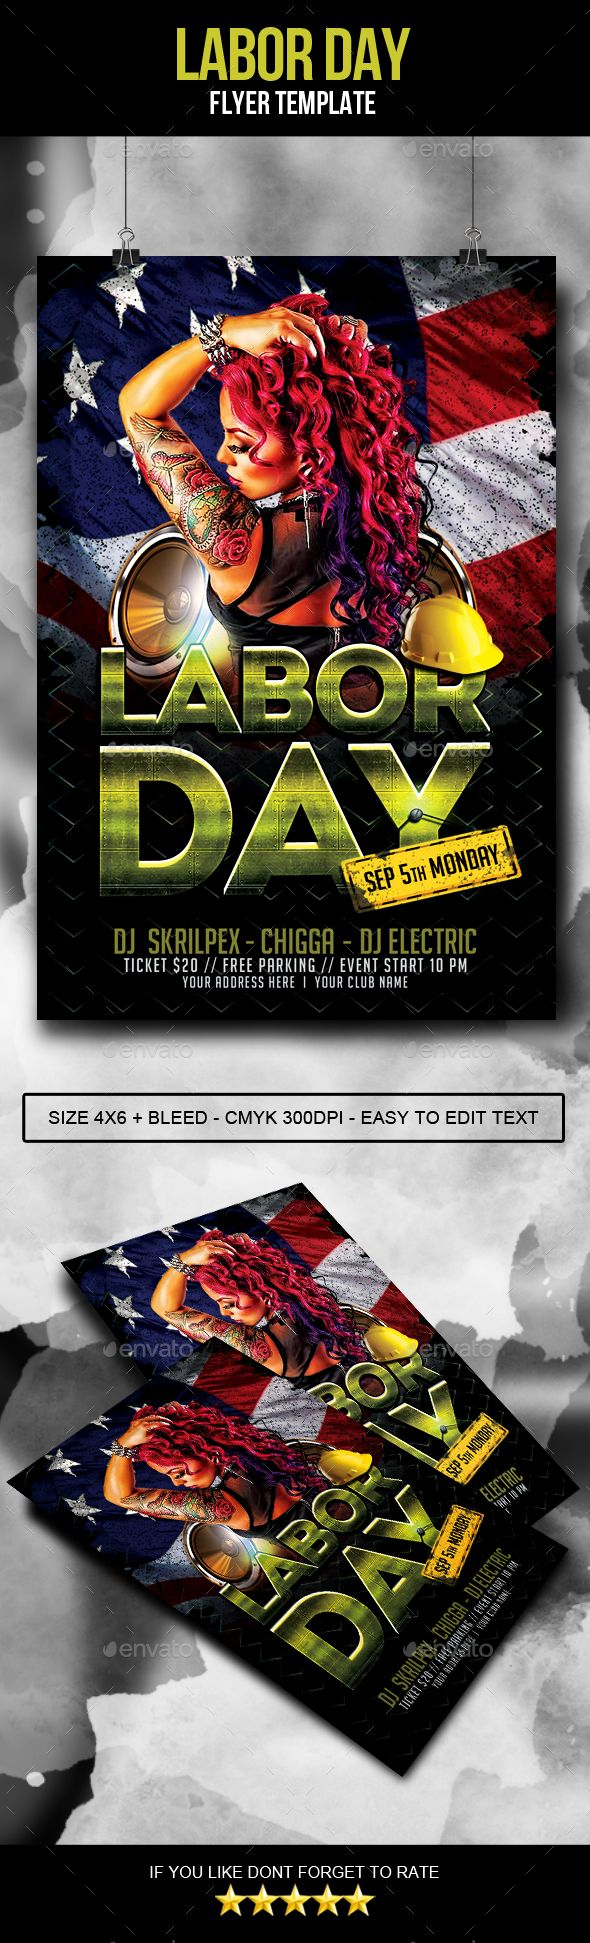 Labor Day Flyer Template PSD. Download Here: Https://graphicriver.net/item/ Labor Day Flyer/17549096?refu003dksioks